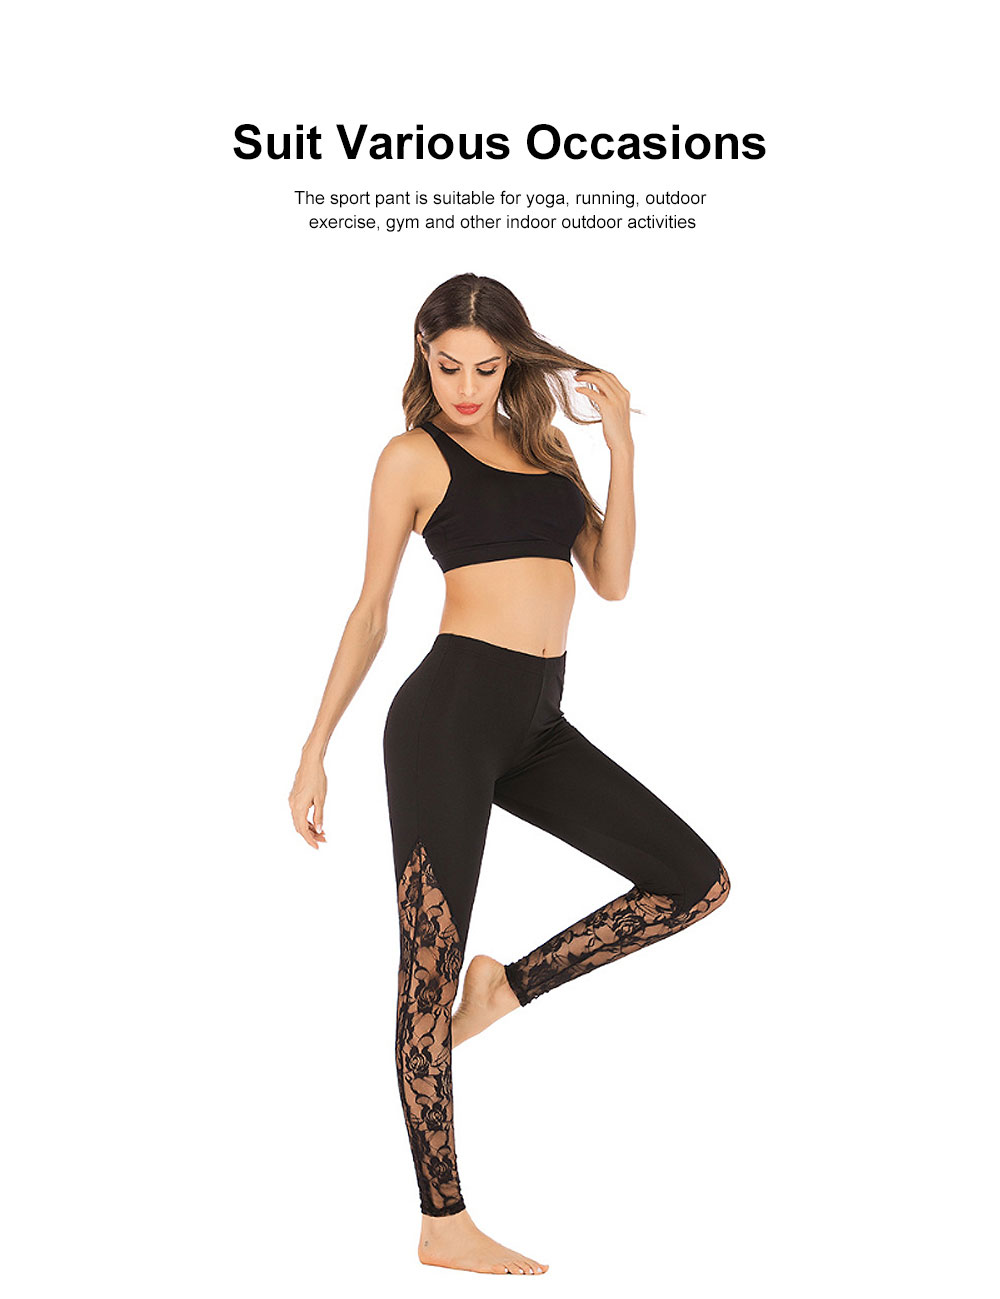 Trendy Lace Yoga Pant Fast-Dry Soft Polyester Trousers Elastic Waistband Breathable Sport Wear Pants for Women Lady 4 Colors 3